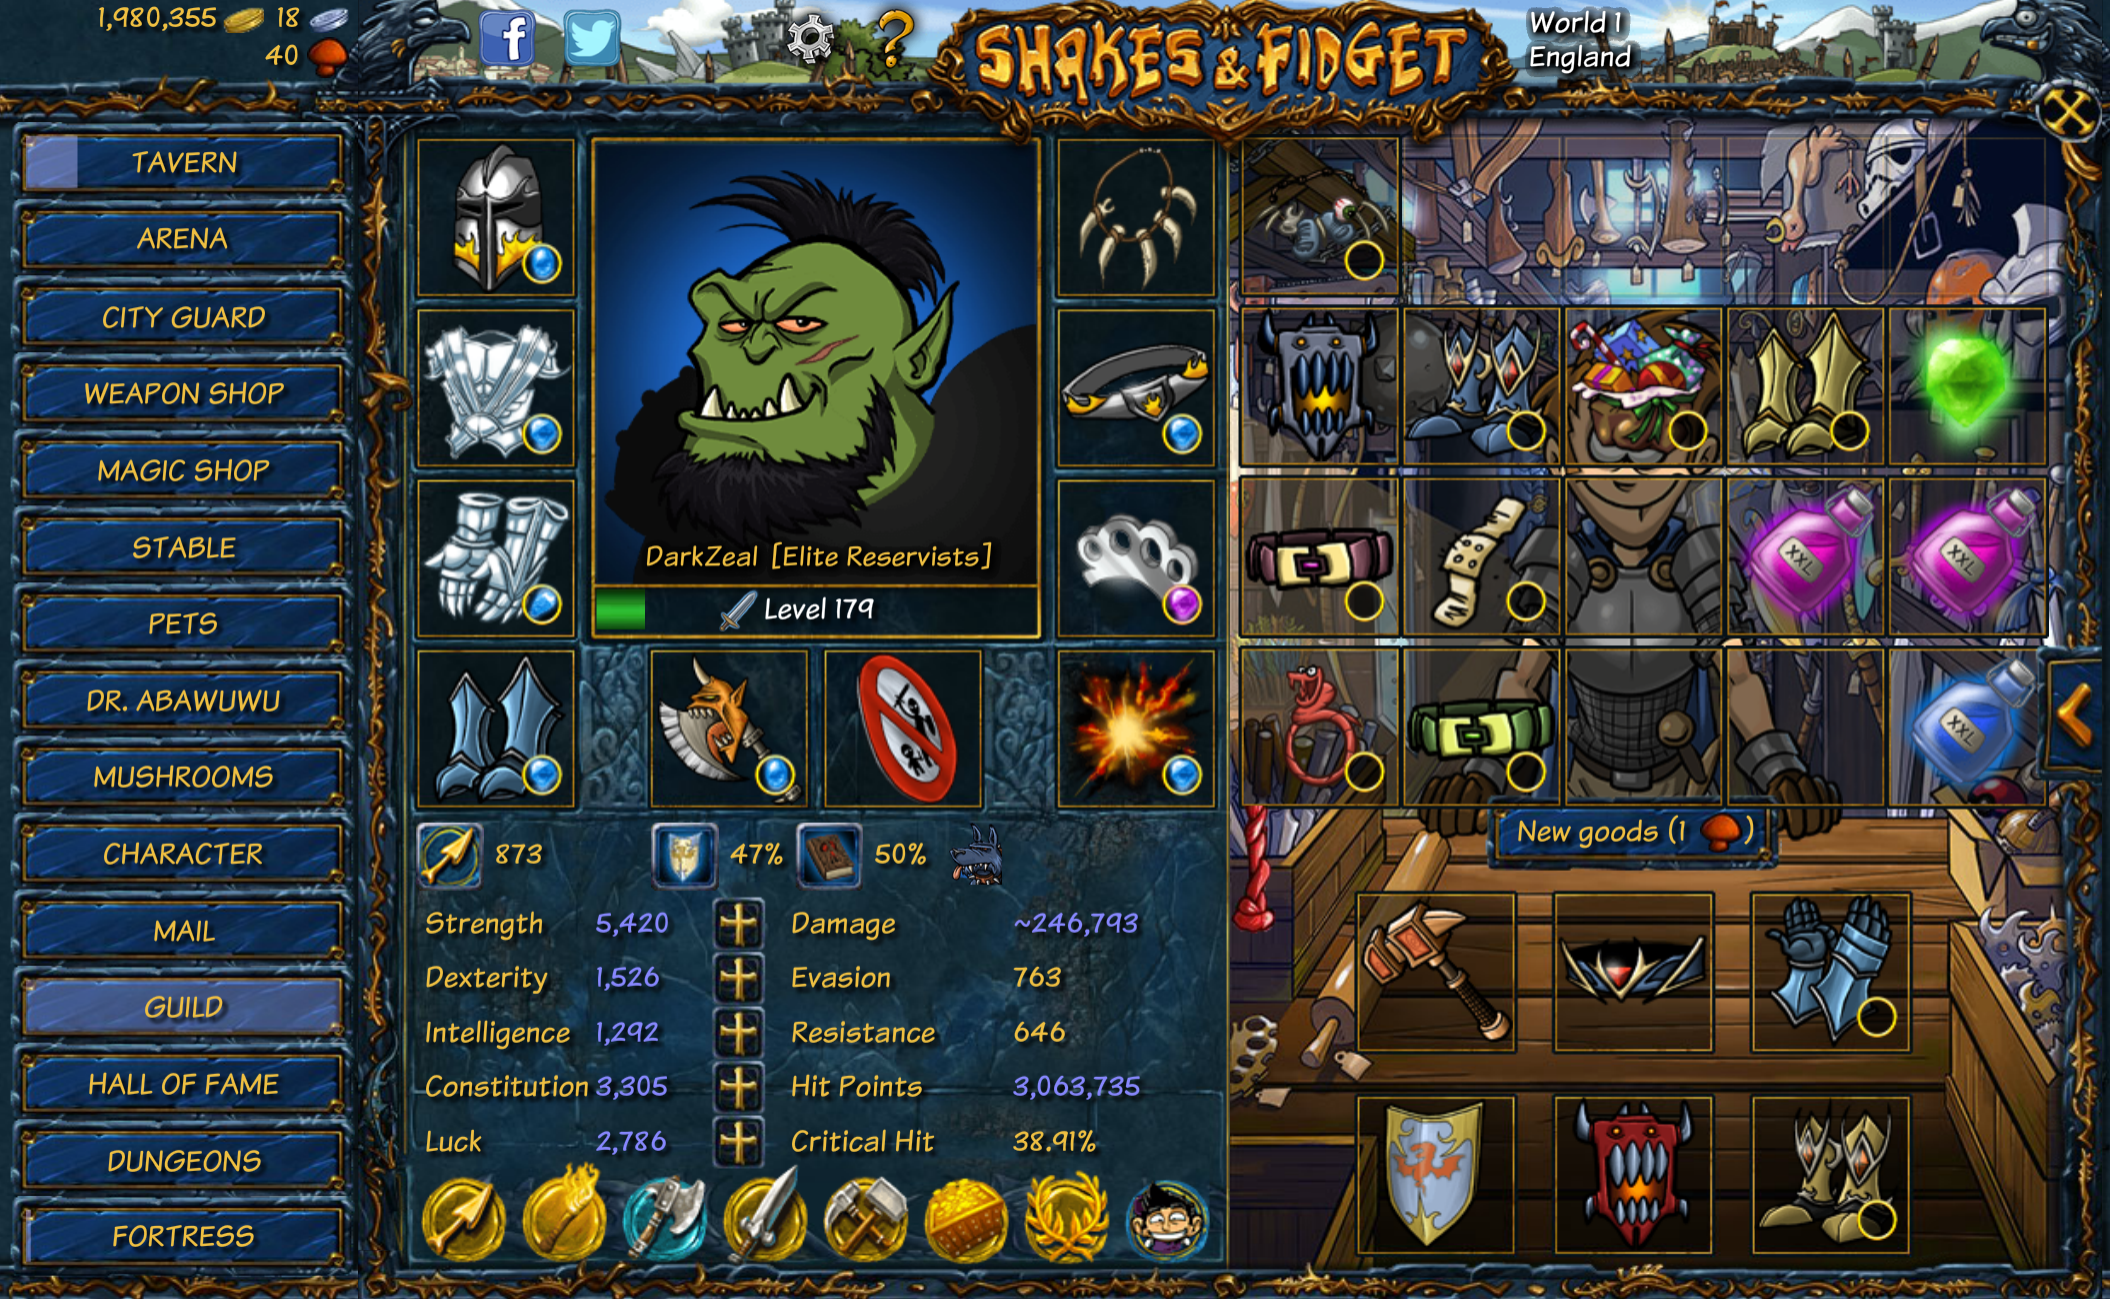 Shakes & Fidget (Account) Multilanguage